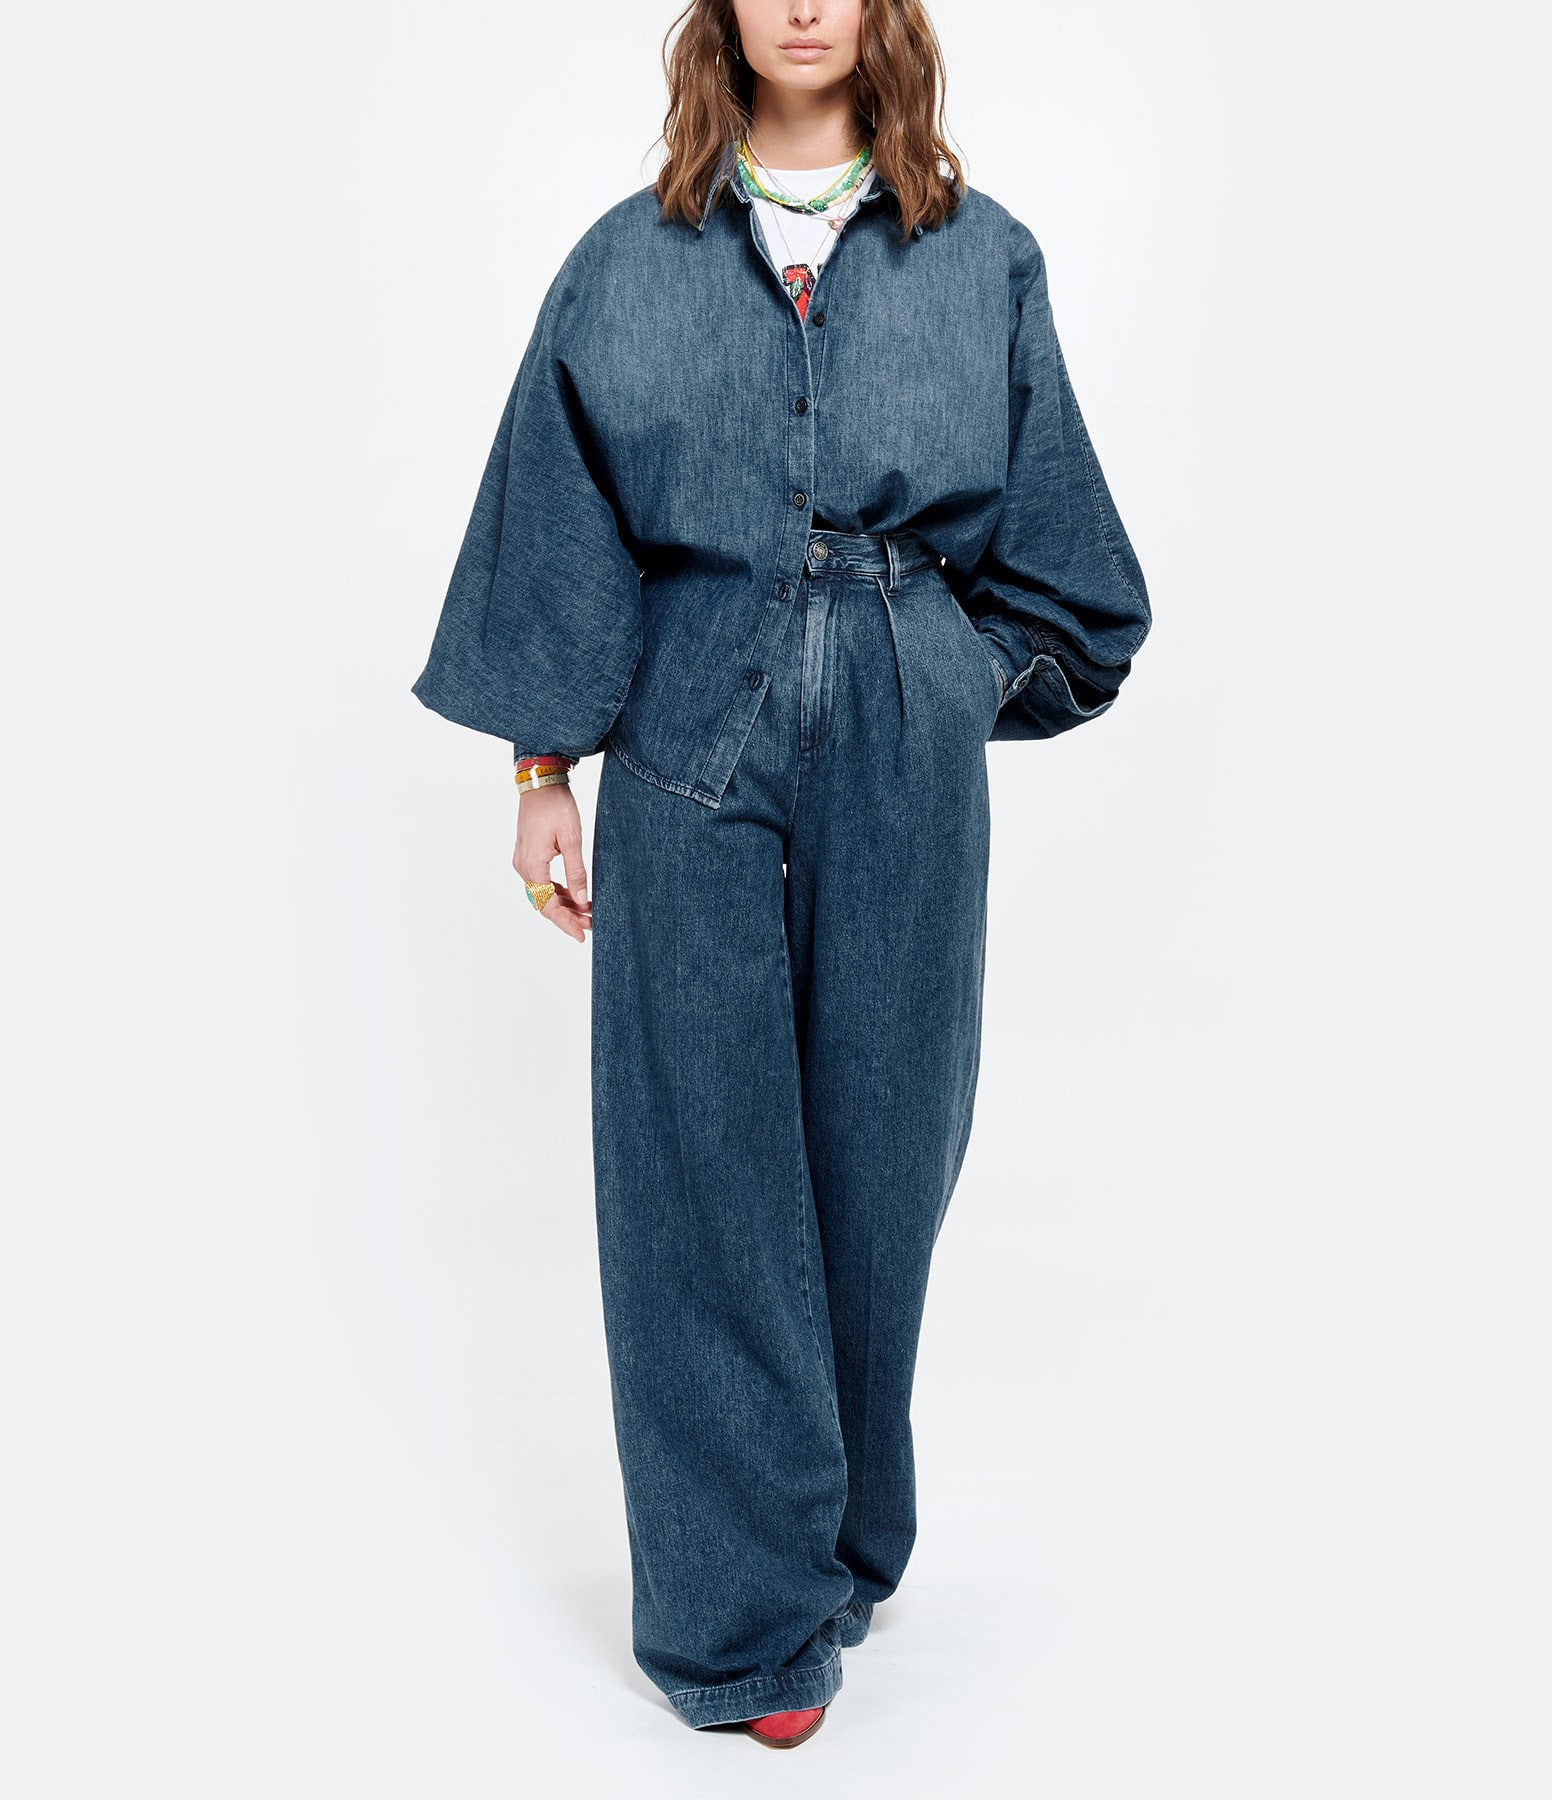 MADE IN TOMBOY - Chemise Claire Bleu